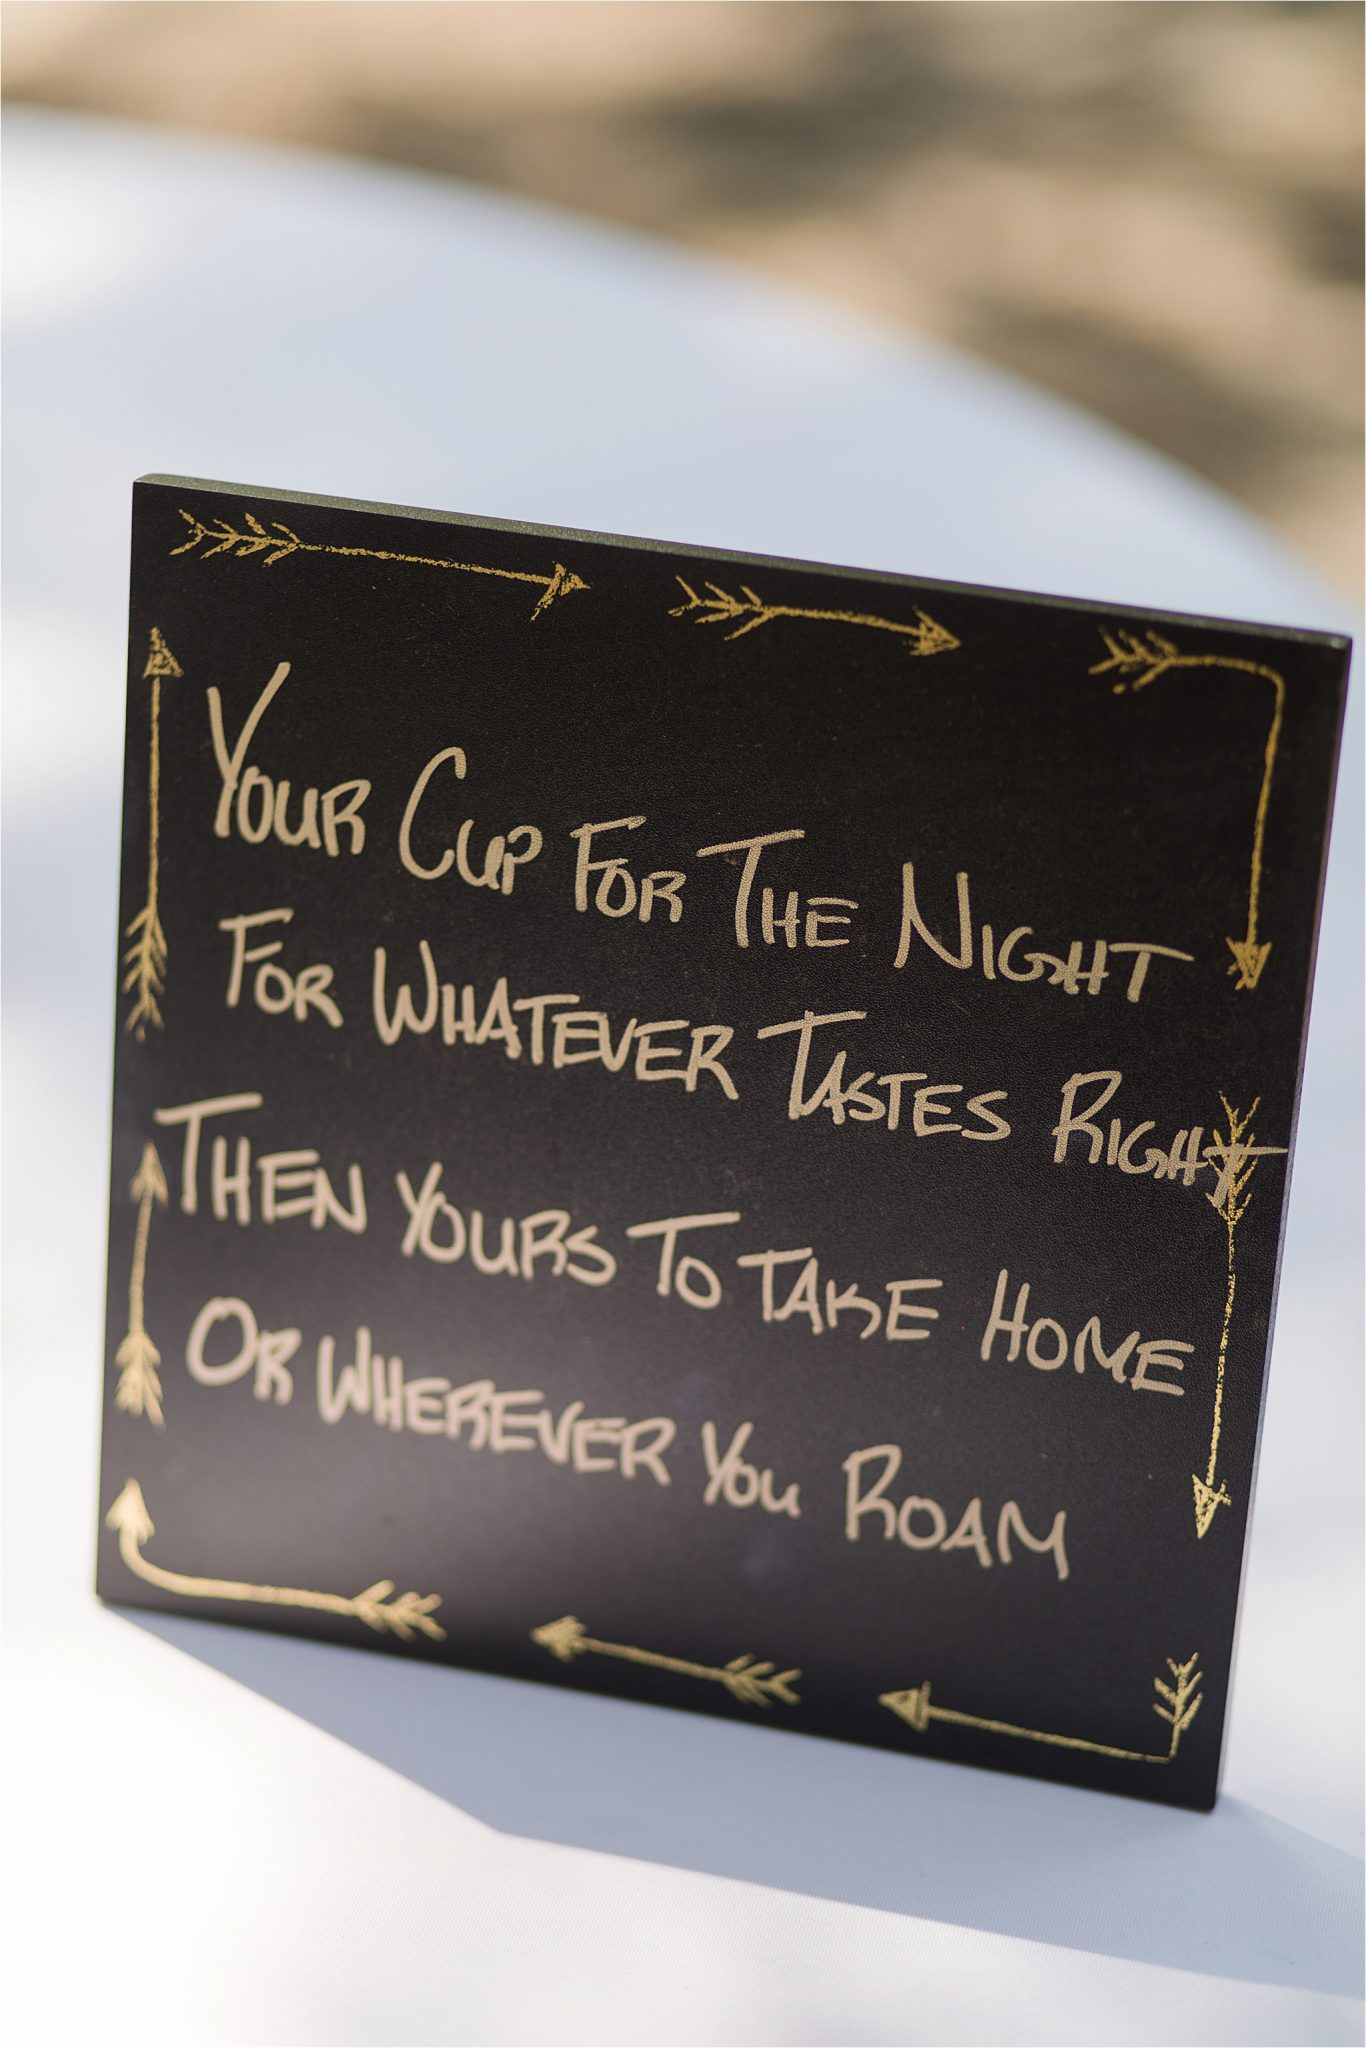 unique wedding favor ideas-wedding signs-cups as wedding favors-new guest gifts